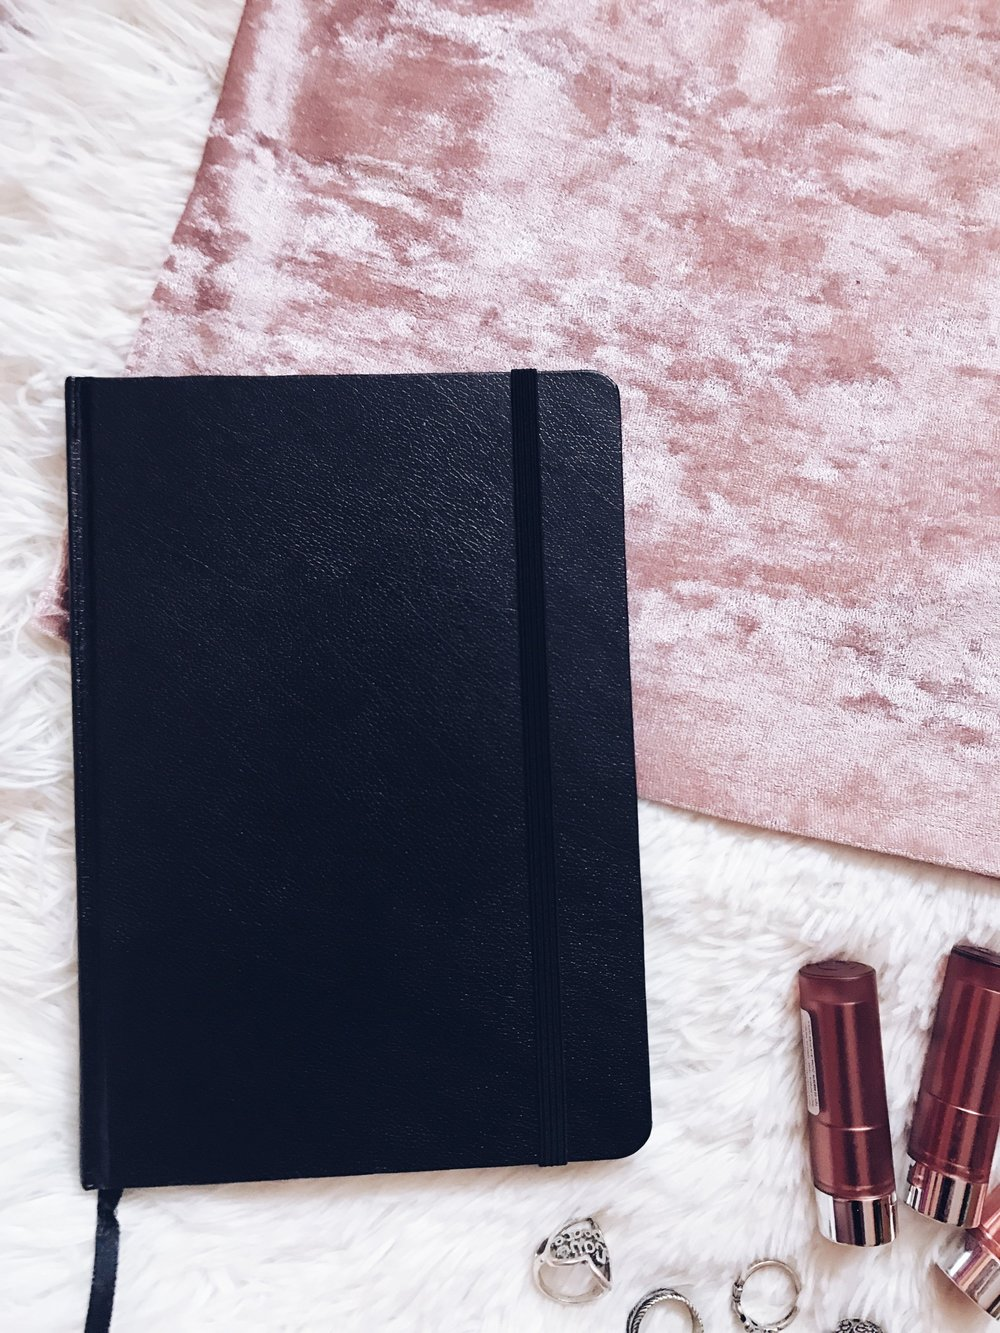 crushed velvet rose gold top black lace outfit ootd jewelry lipstick rings moleskine notebook flatlay style fashion arockchicklife